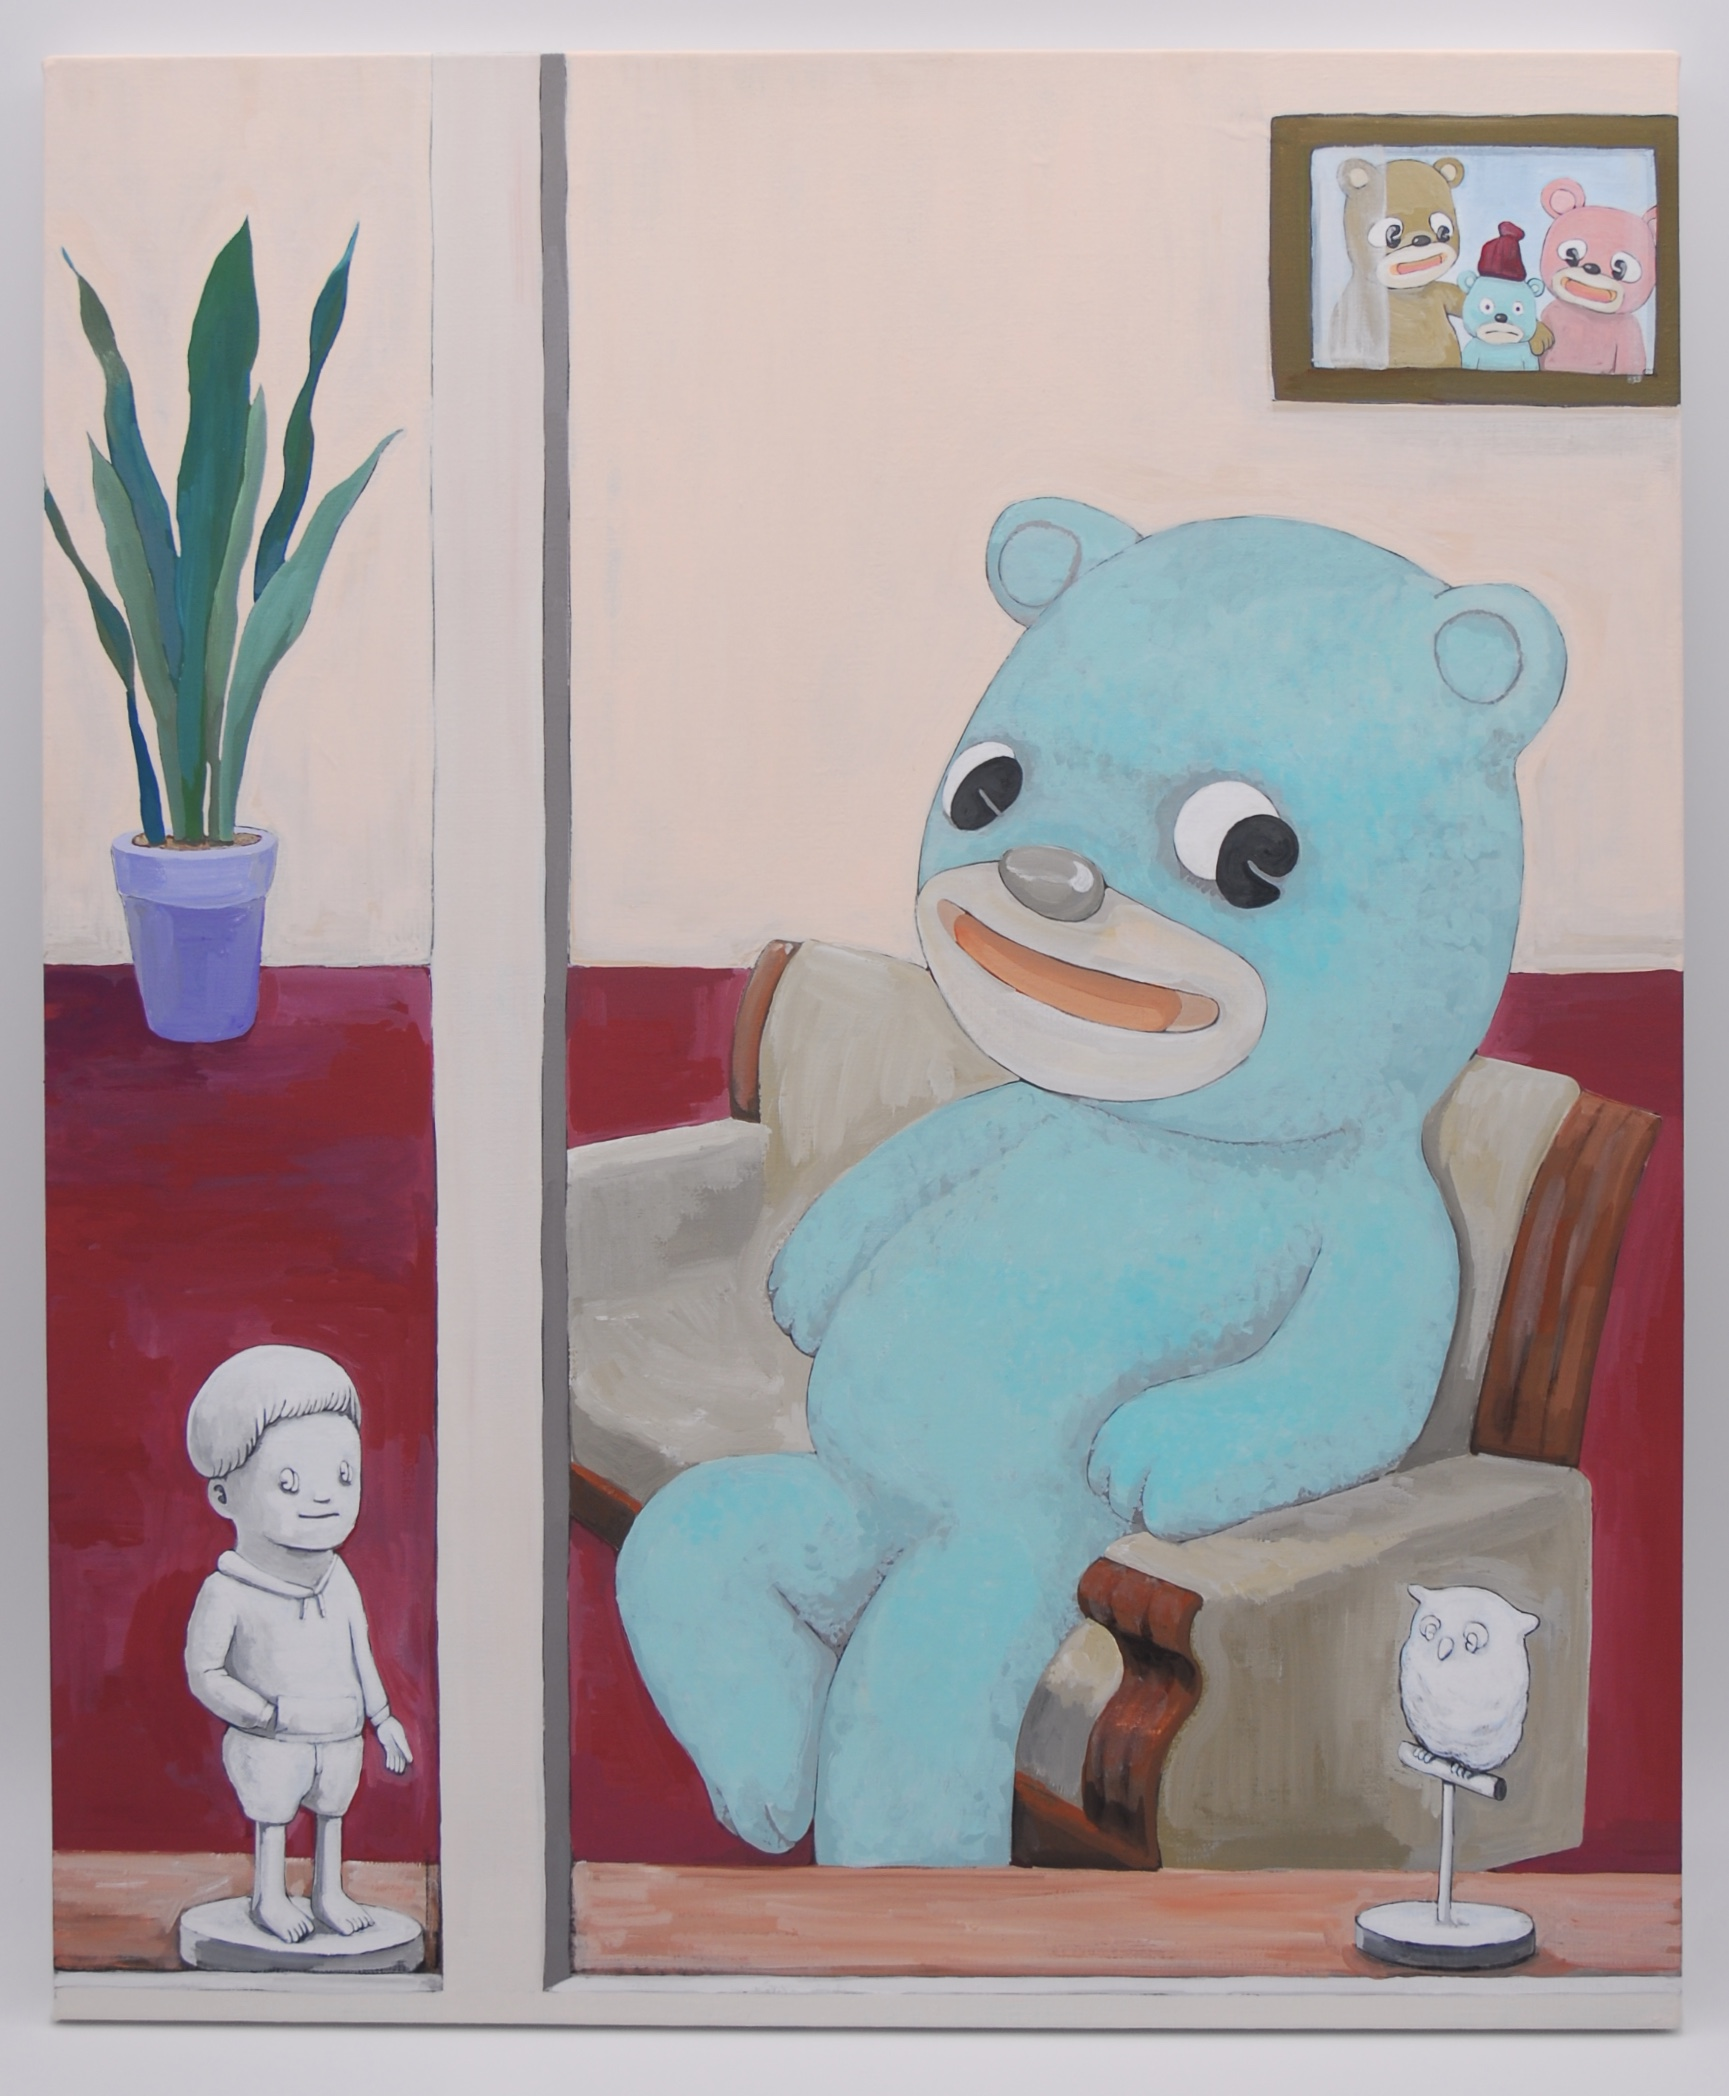 Bear in the room